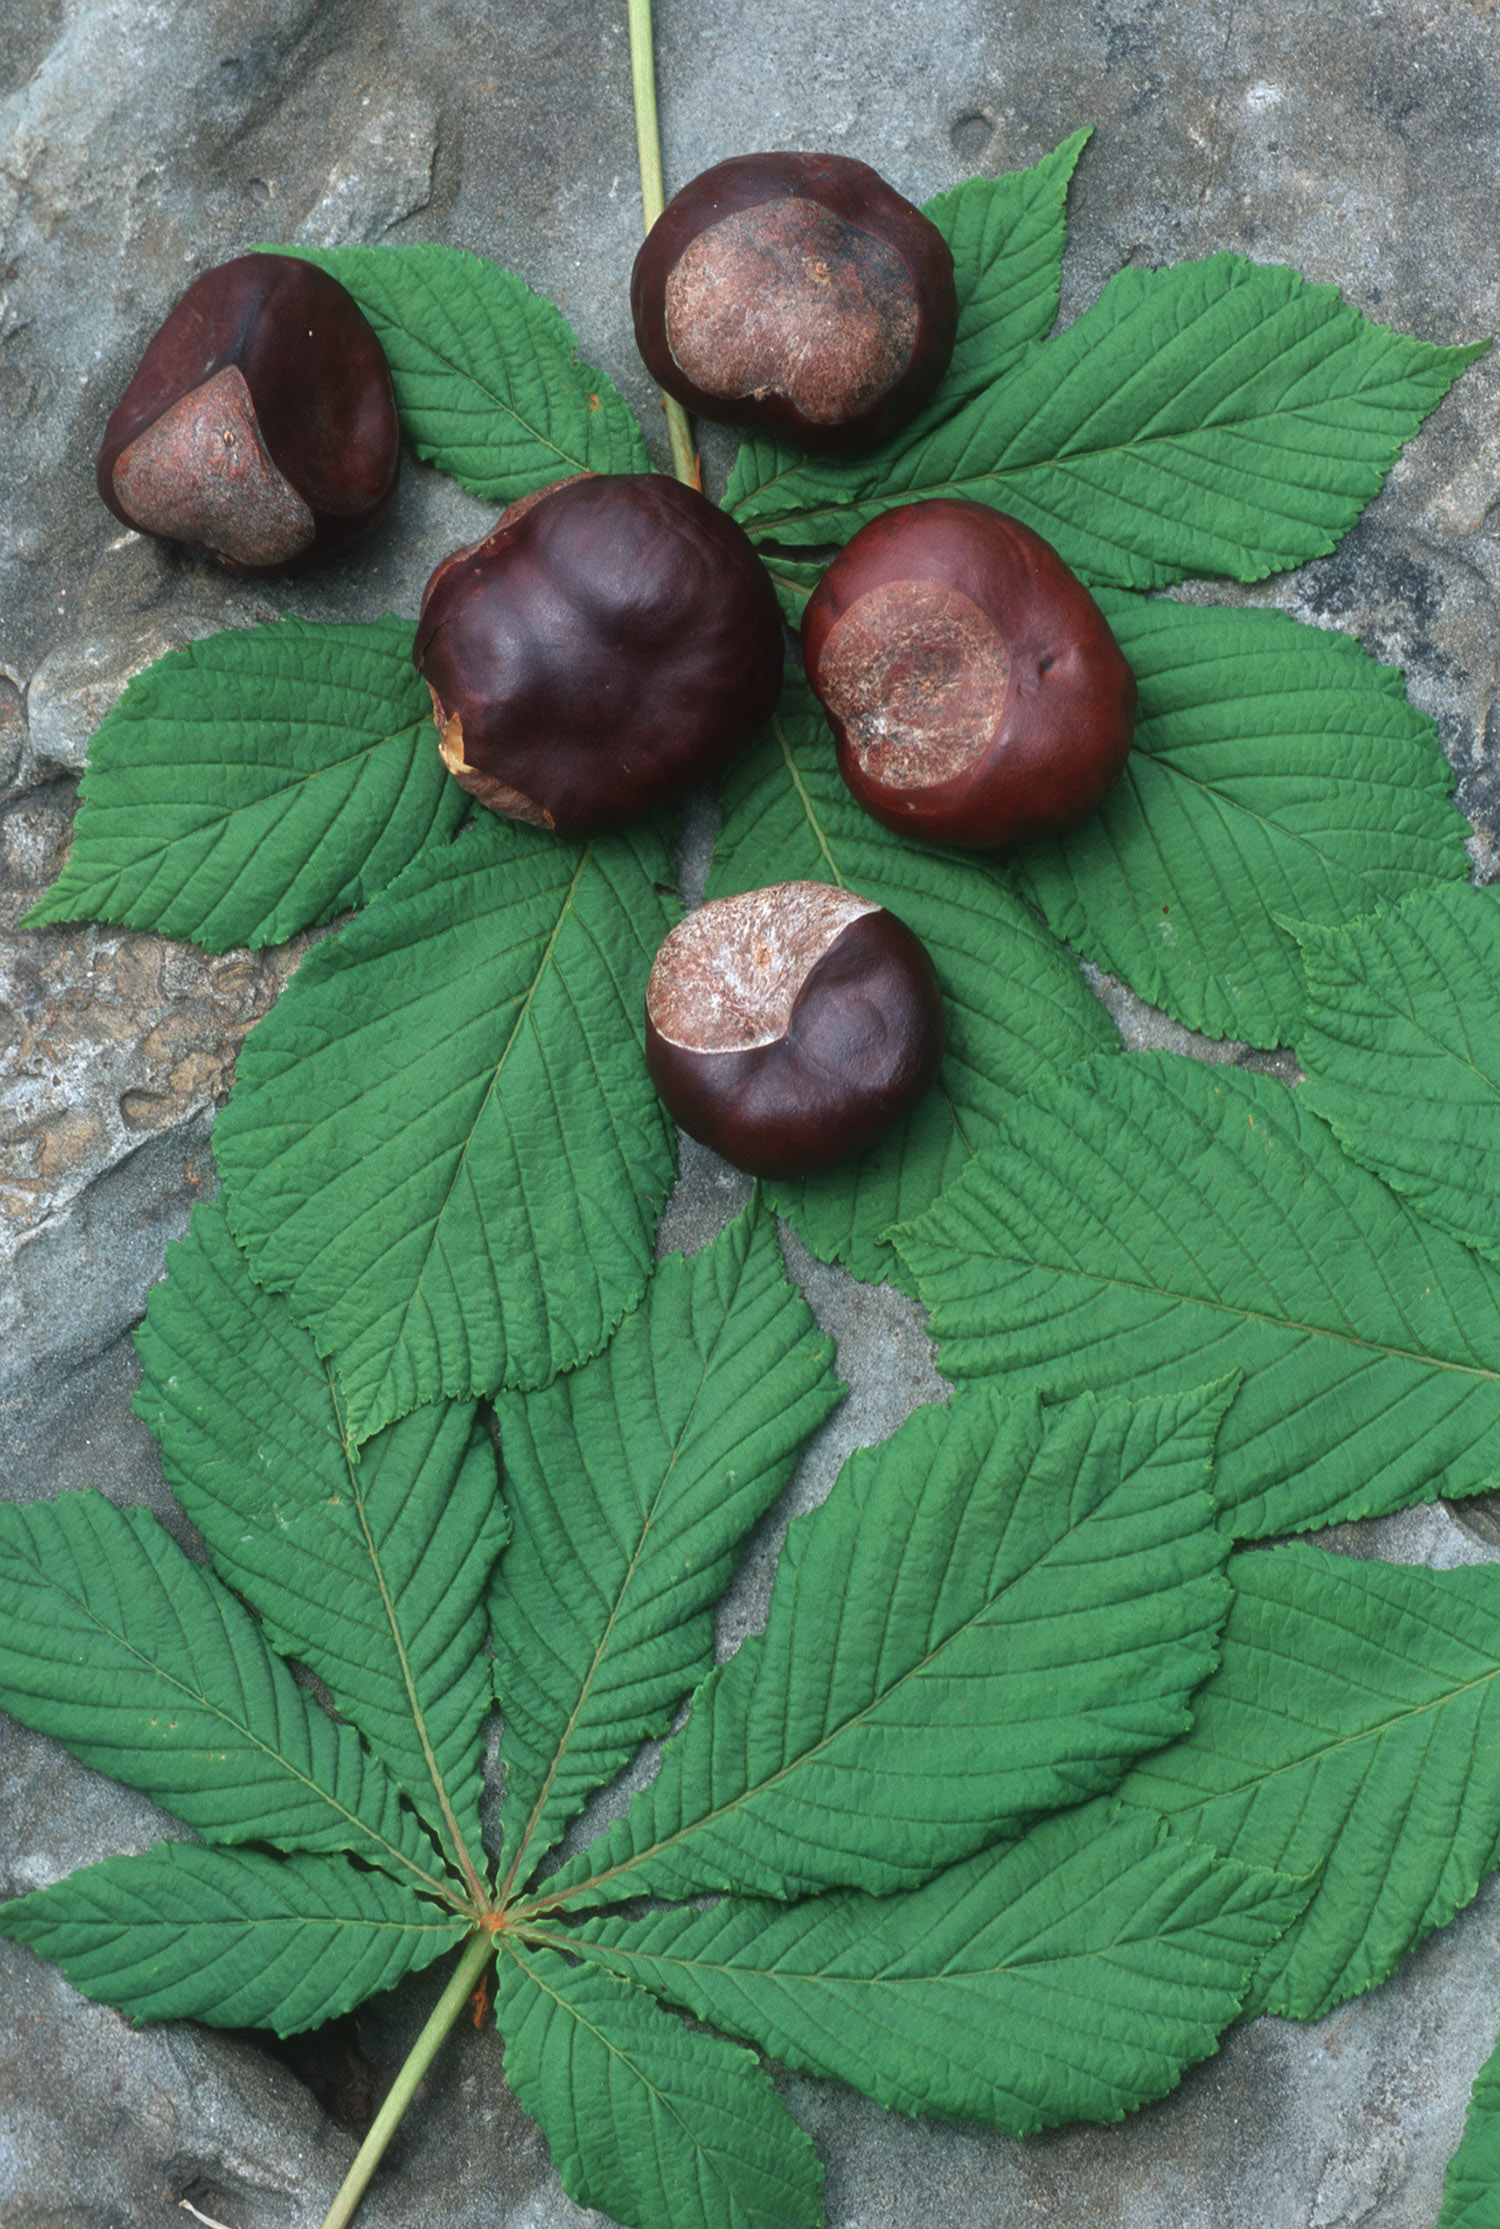 Horse chestnut is a plant used in medicine